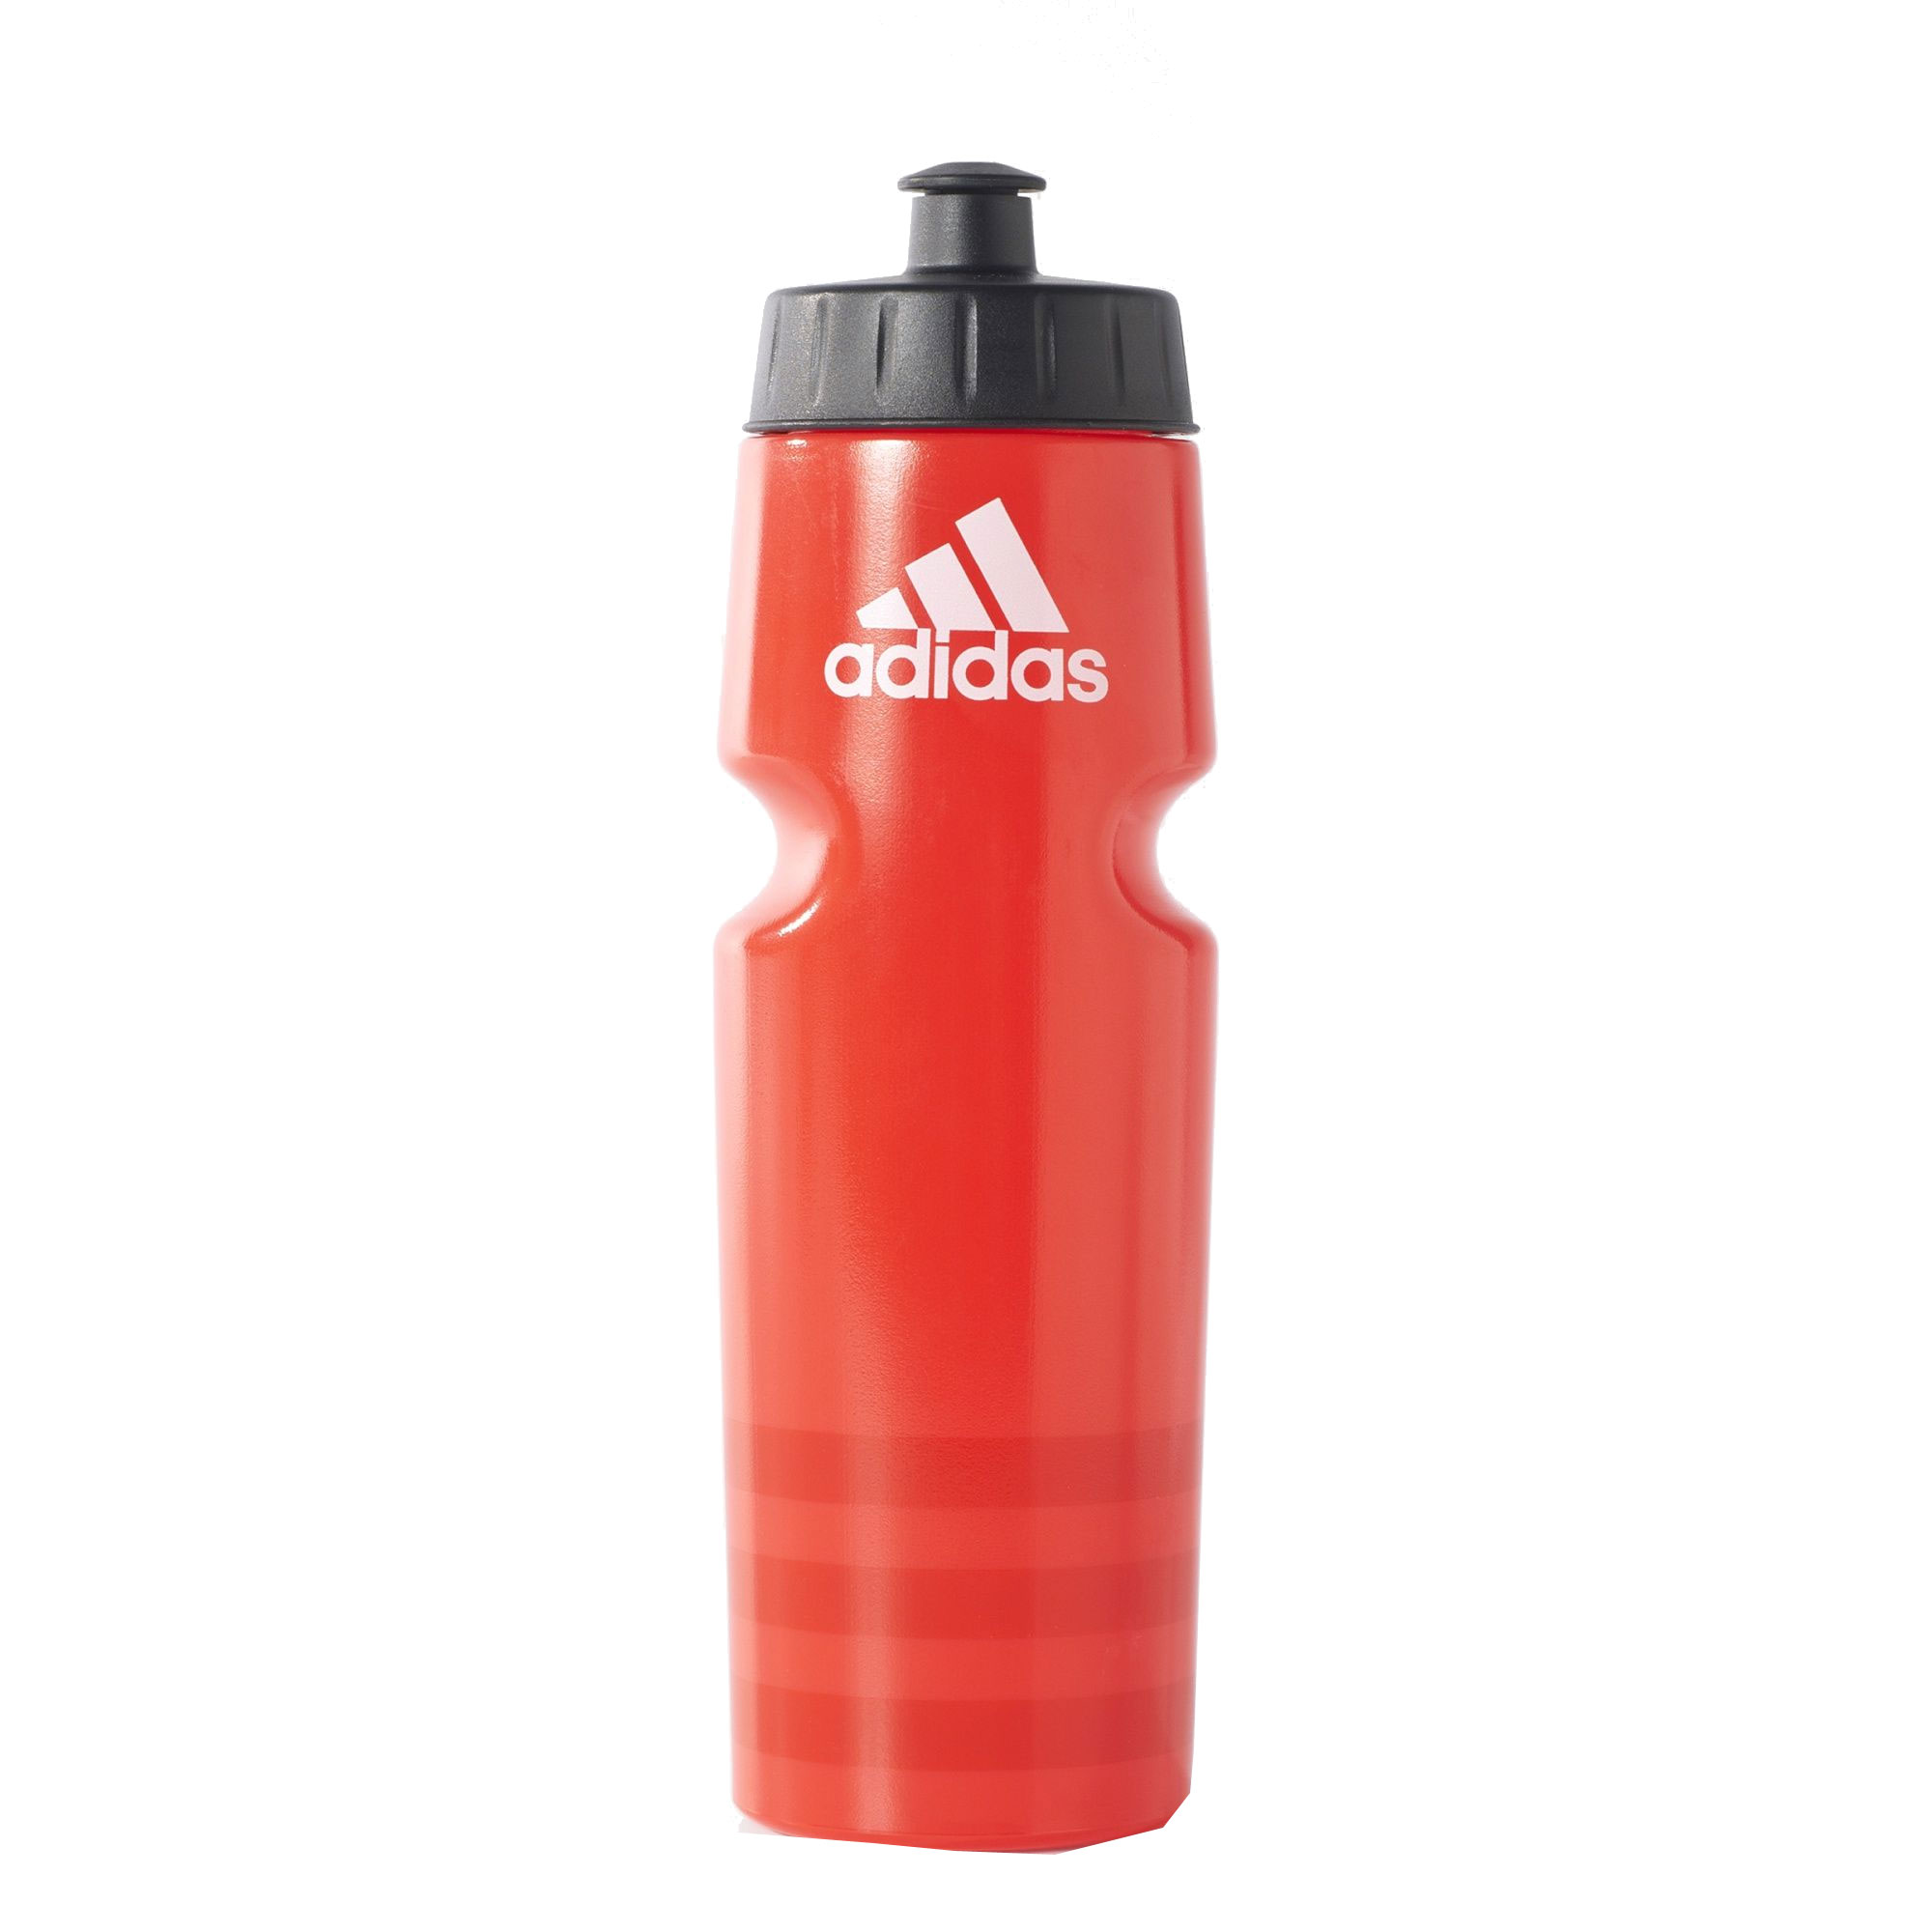 ADIDAS ACE BOTTLE 750ML S99047